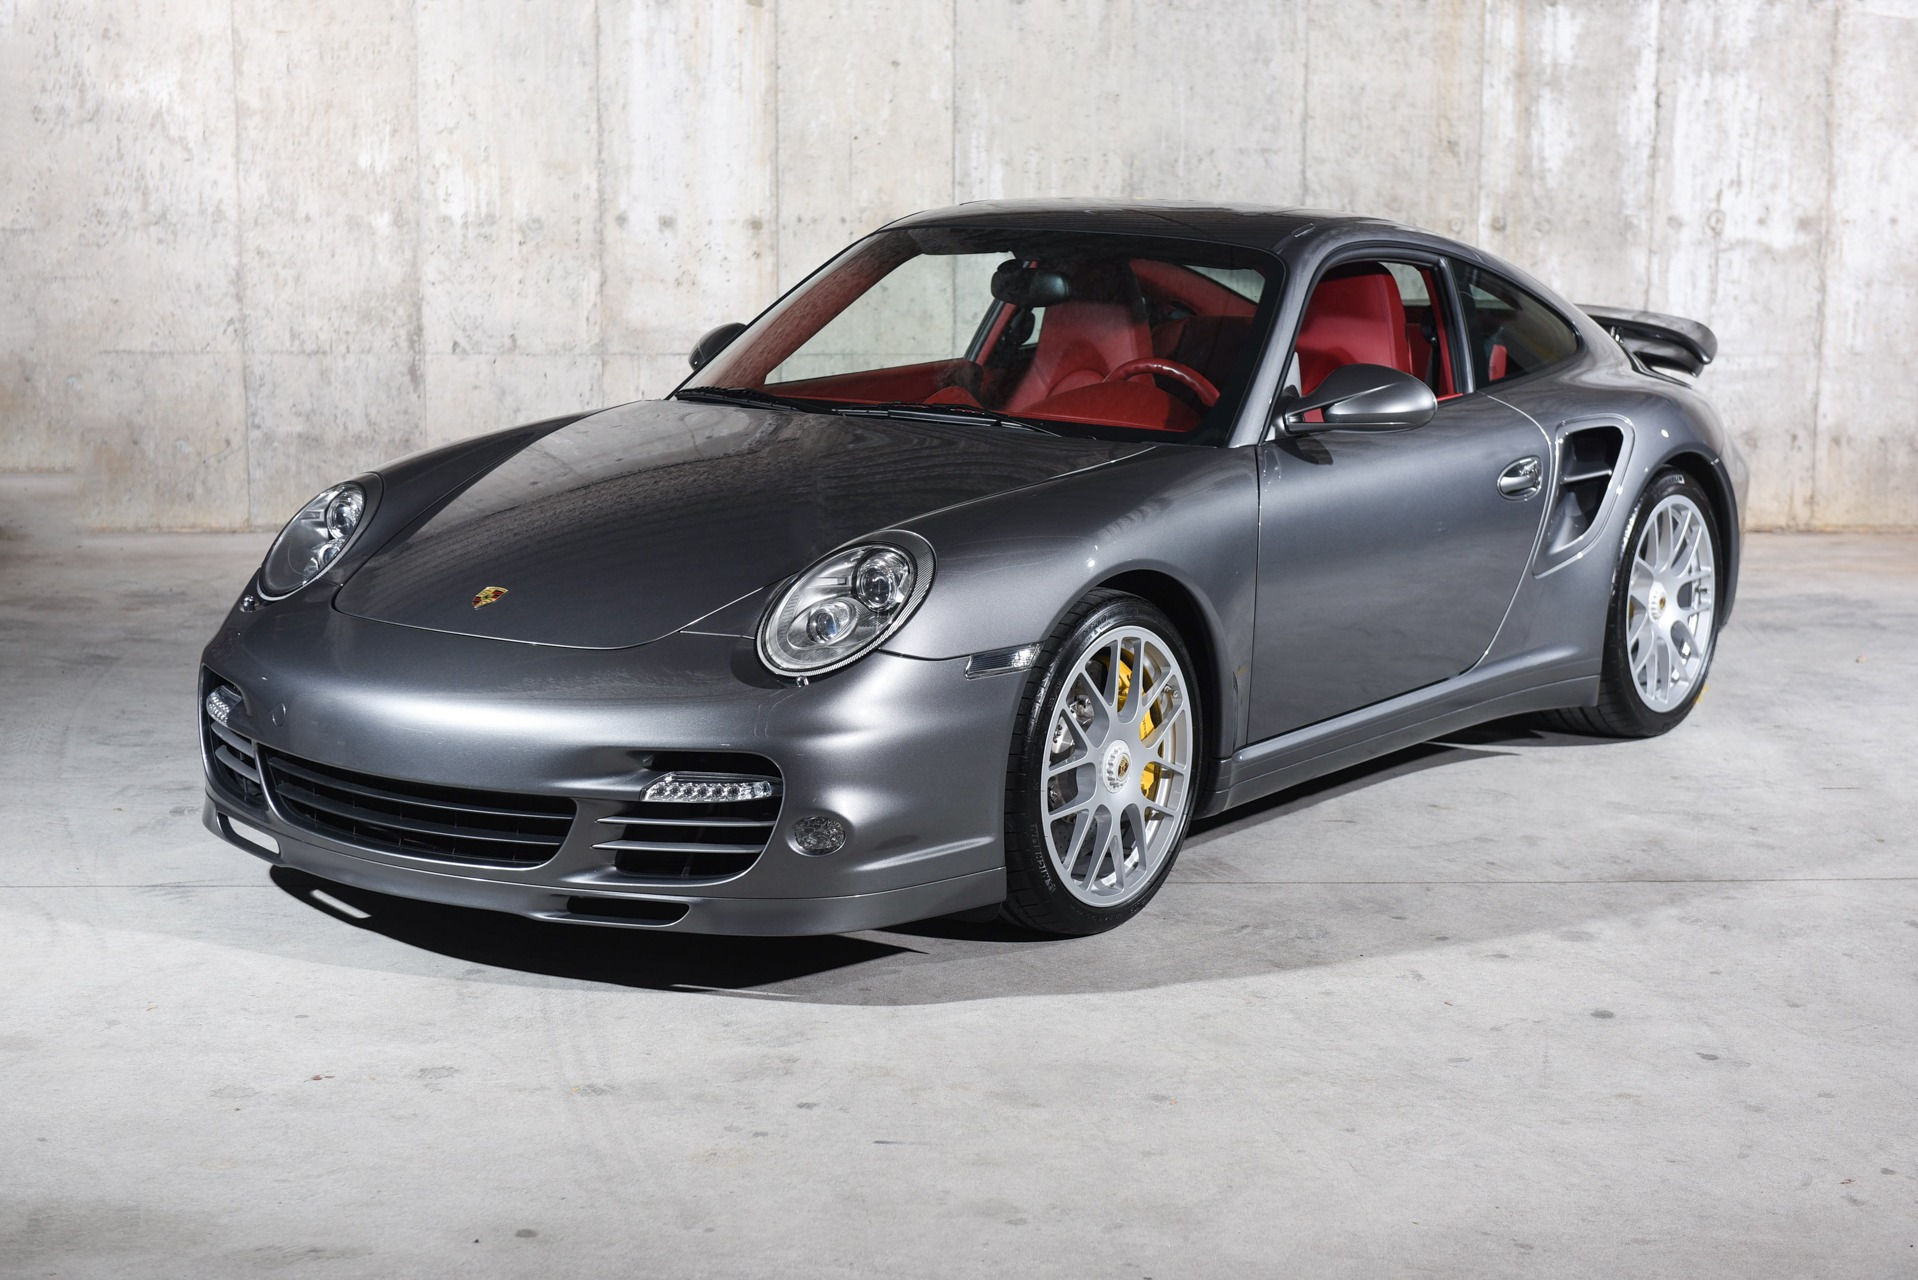 Buyer's guide – The Porsche 997 Turbo (S)